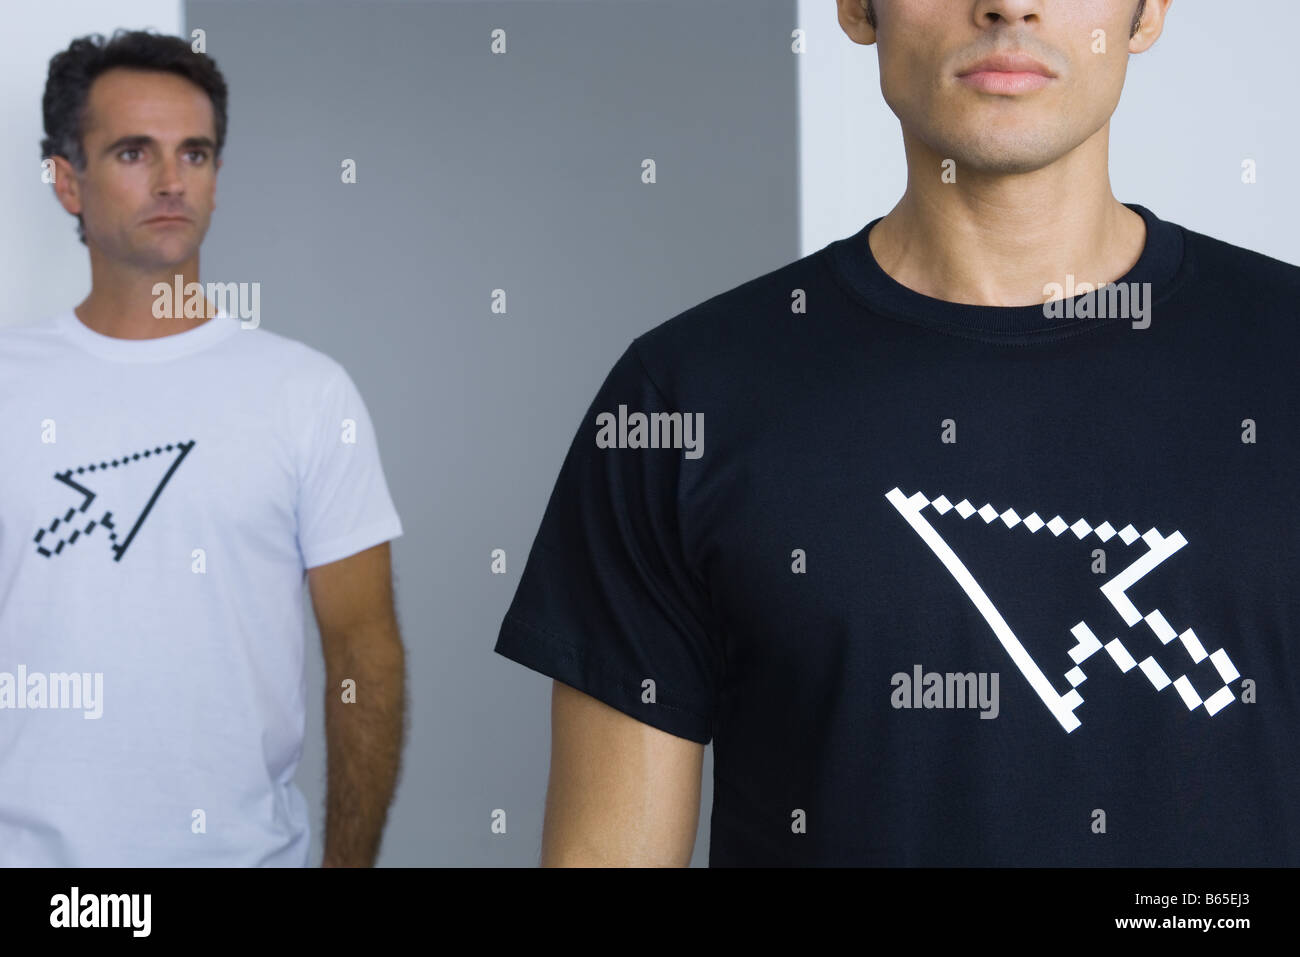 Men wearing tee-shirts printed with computer cursors, cropped - Stock Image